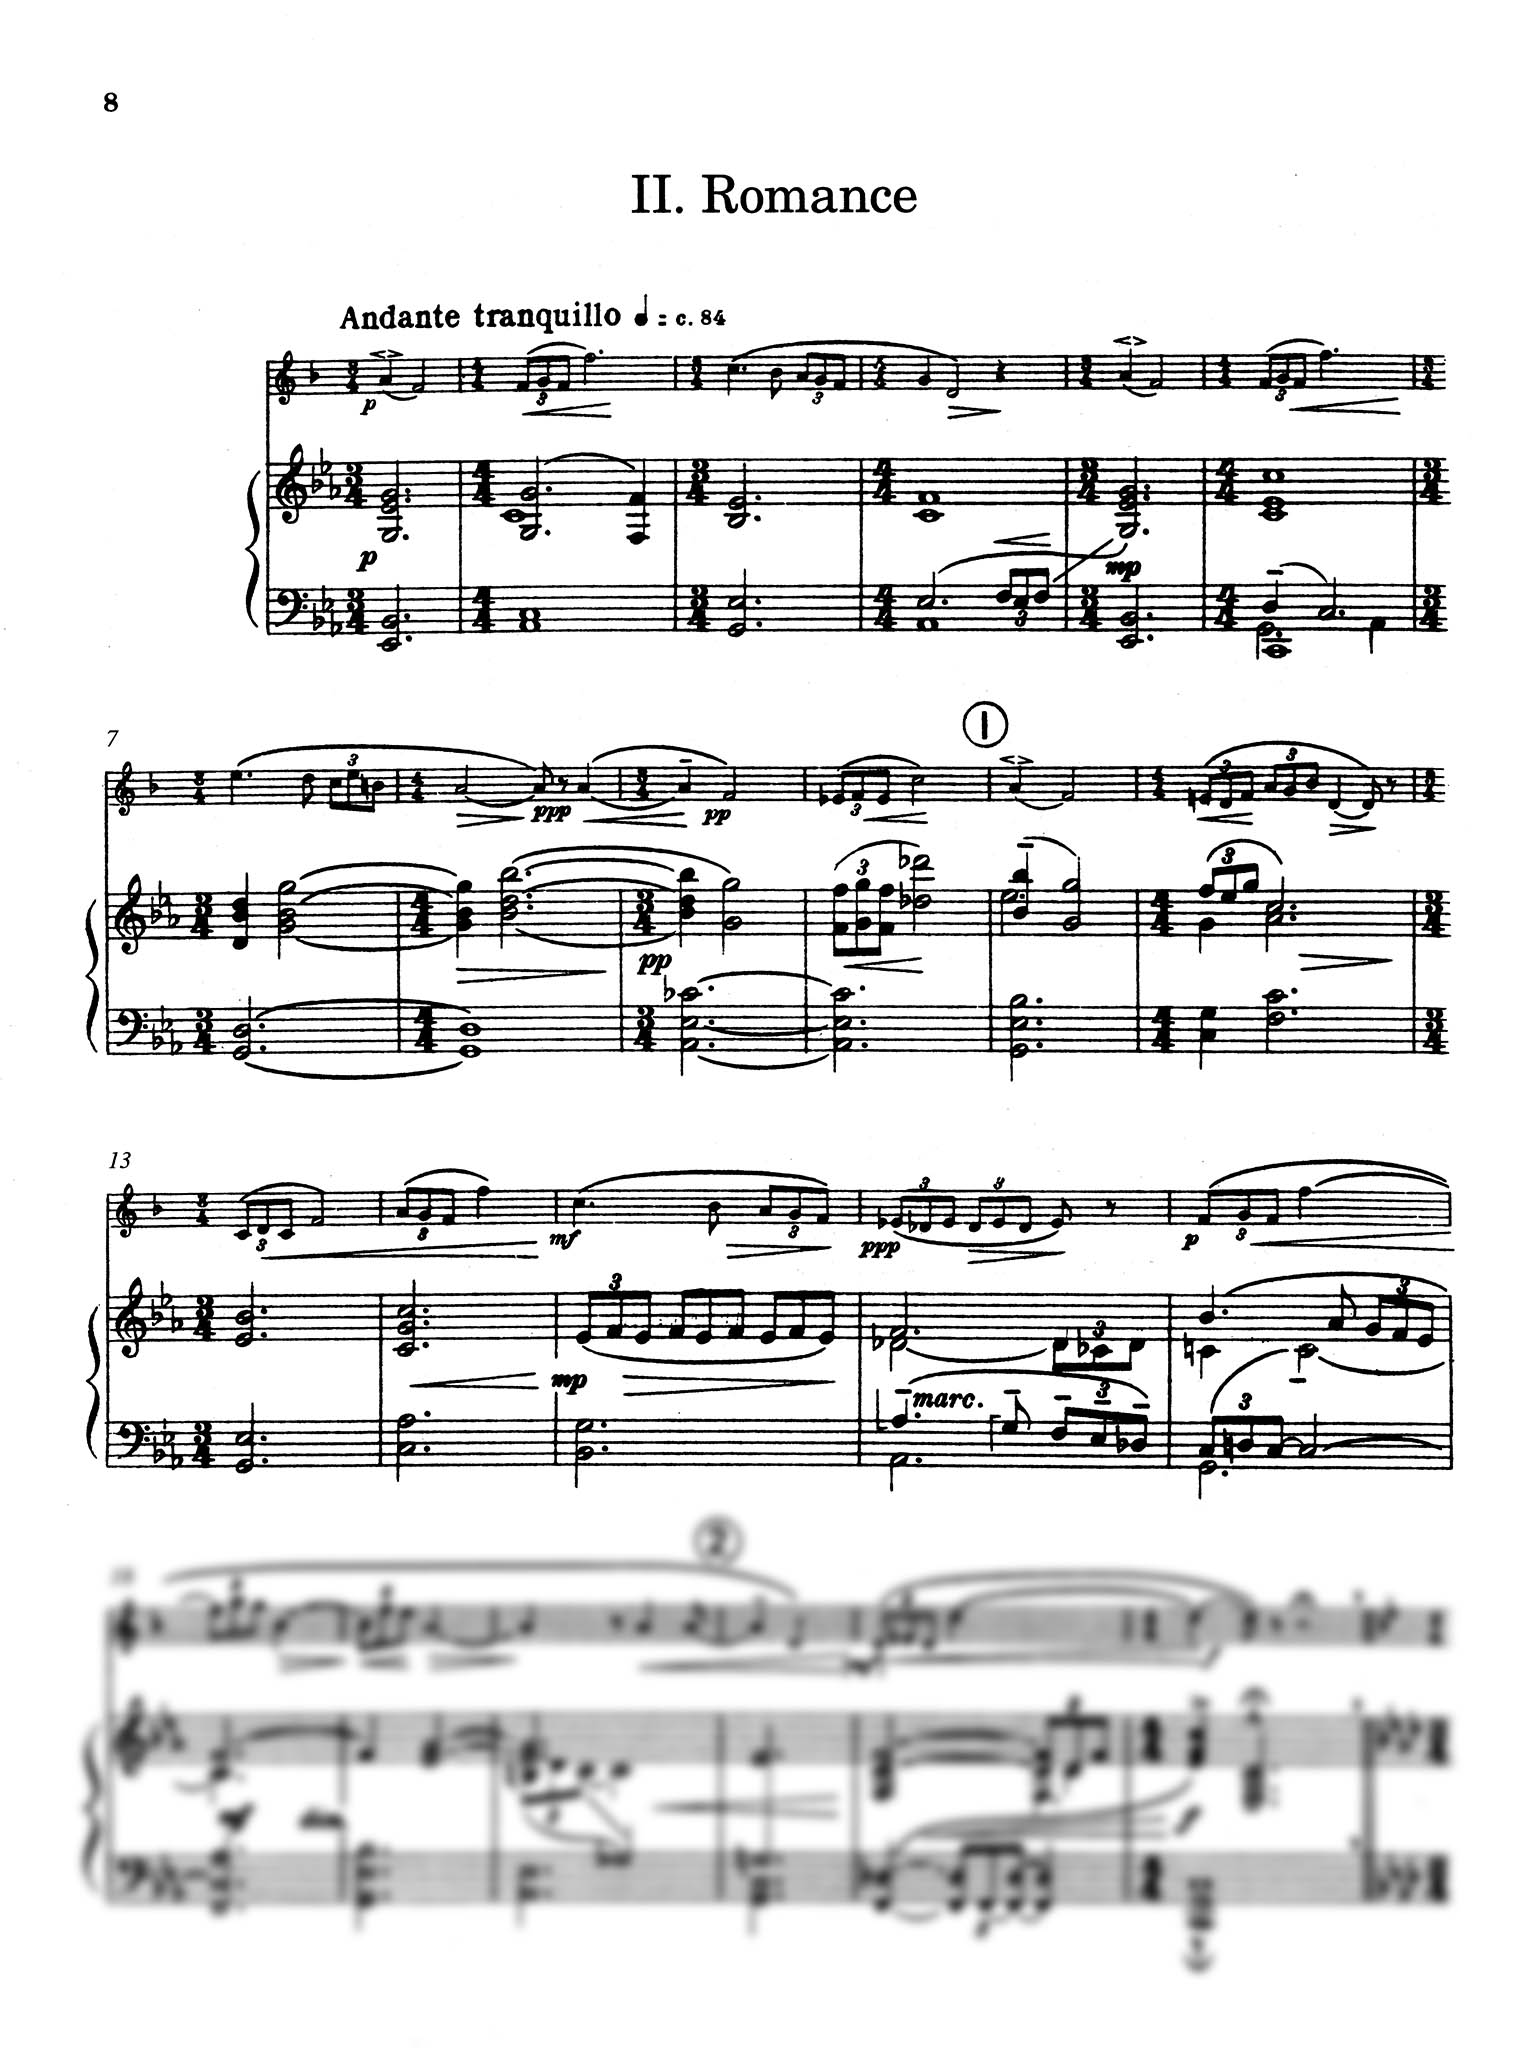 Five Bagatelles, Op. 23 - Movement 2